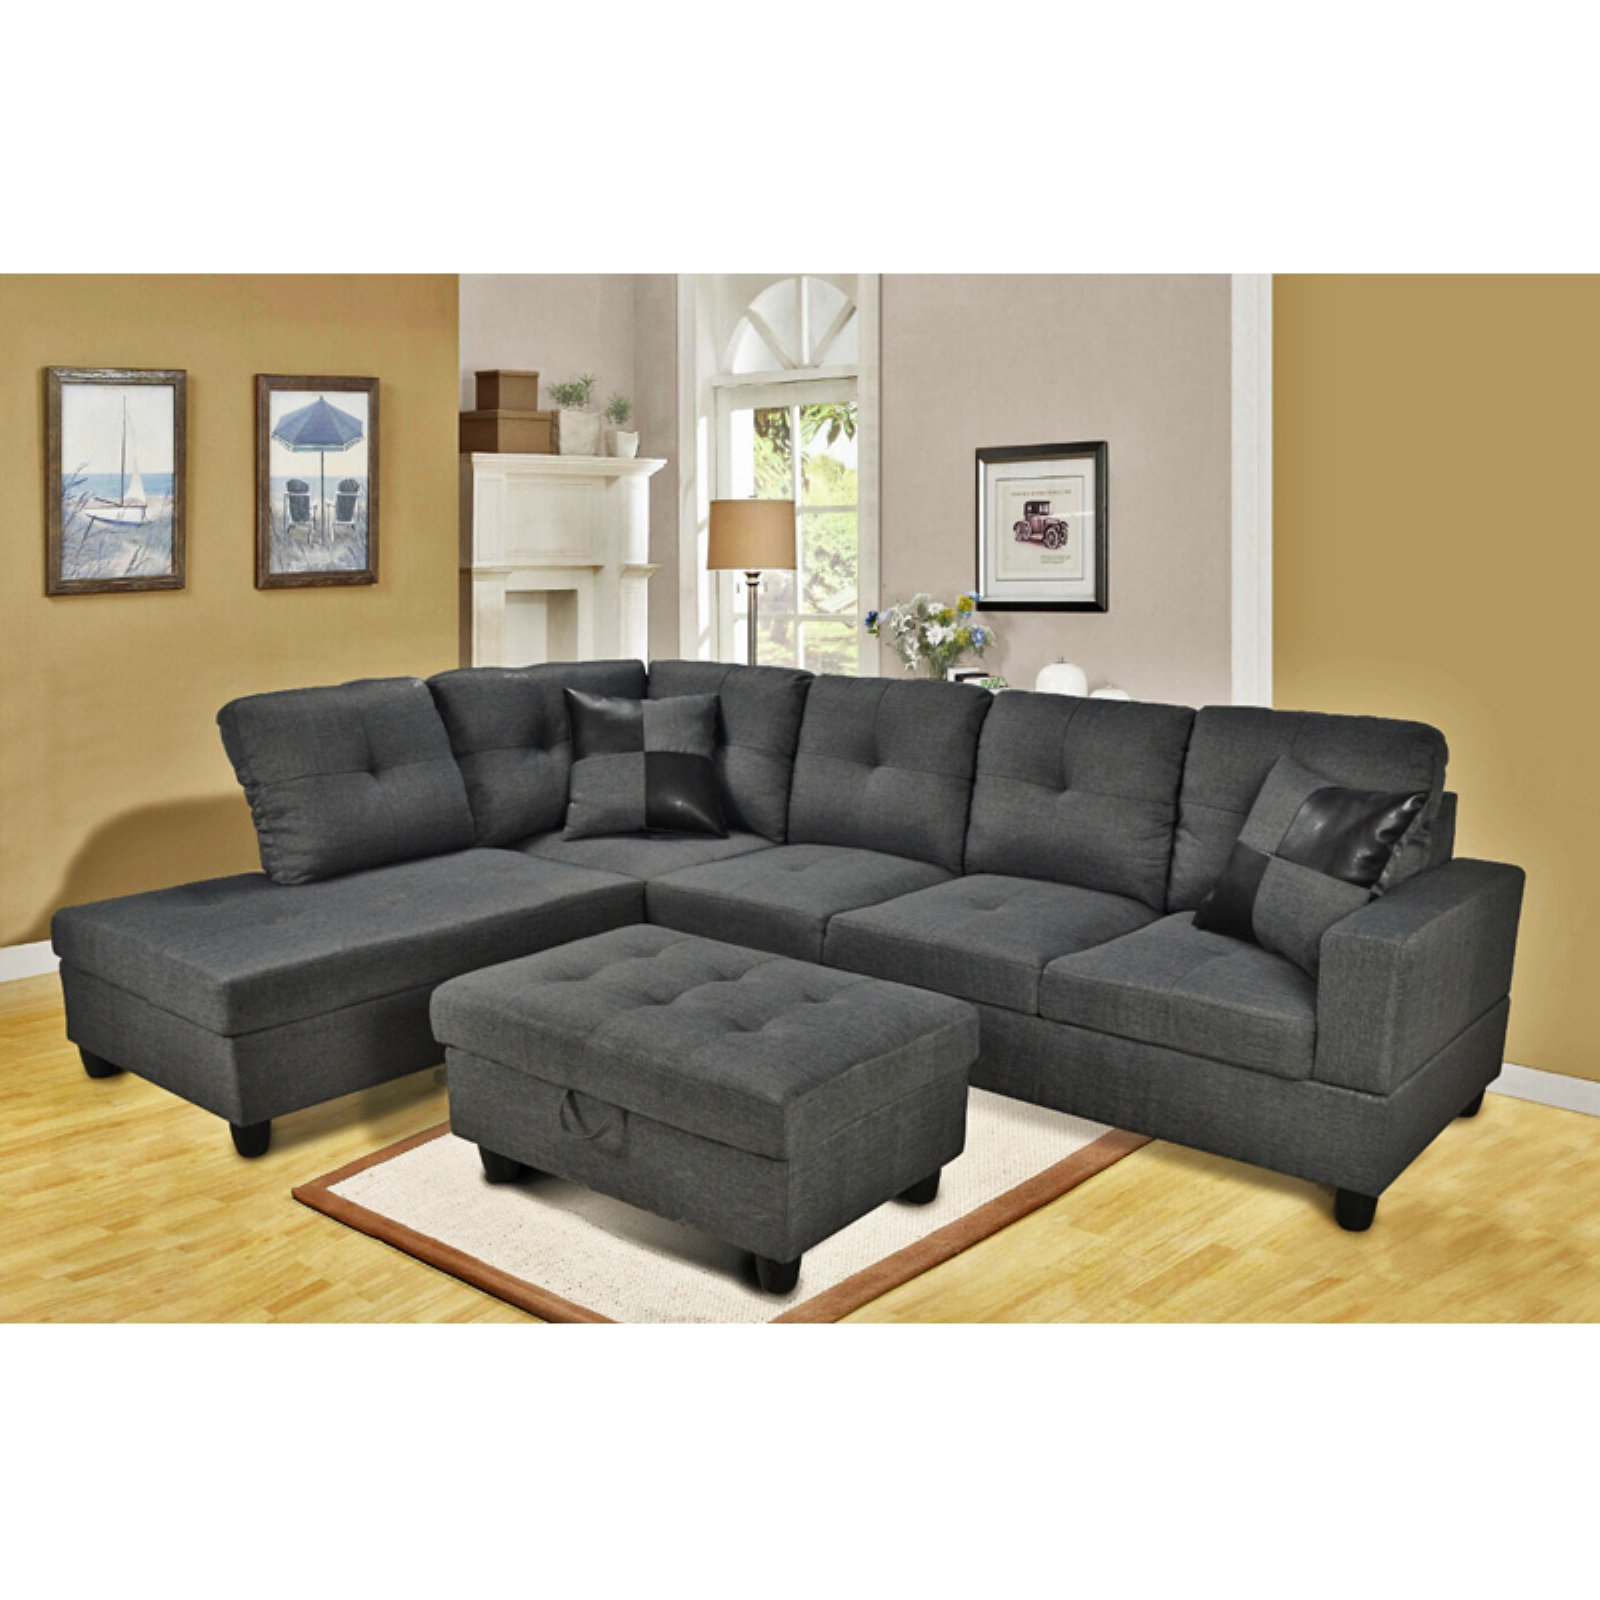 Outstanding Beverly Fine Furniture 3 Piece Gray Microfiber Sectional Squirreltailoven Fun Painted Chair Ideas Images Squirreltailovenorg